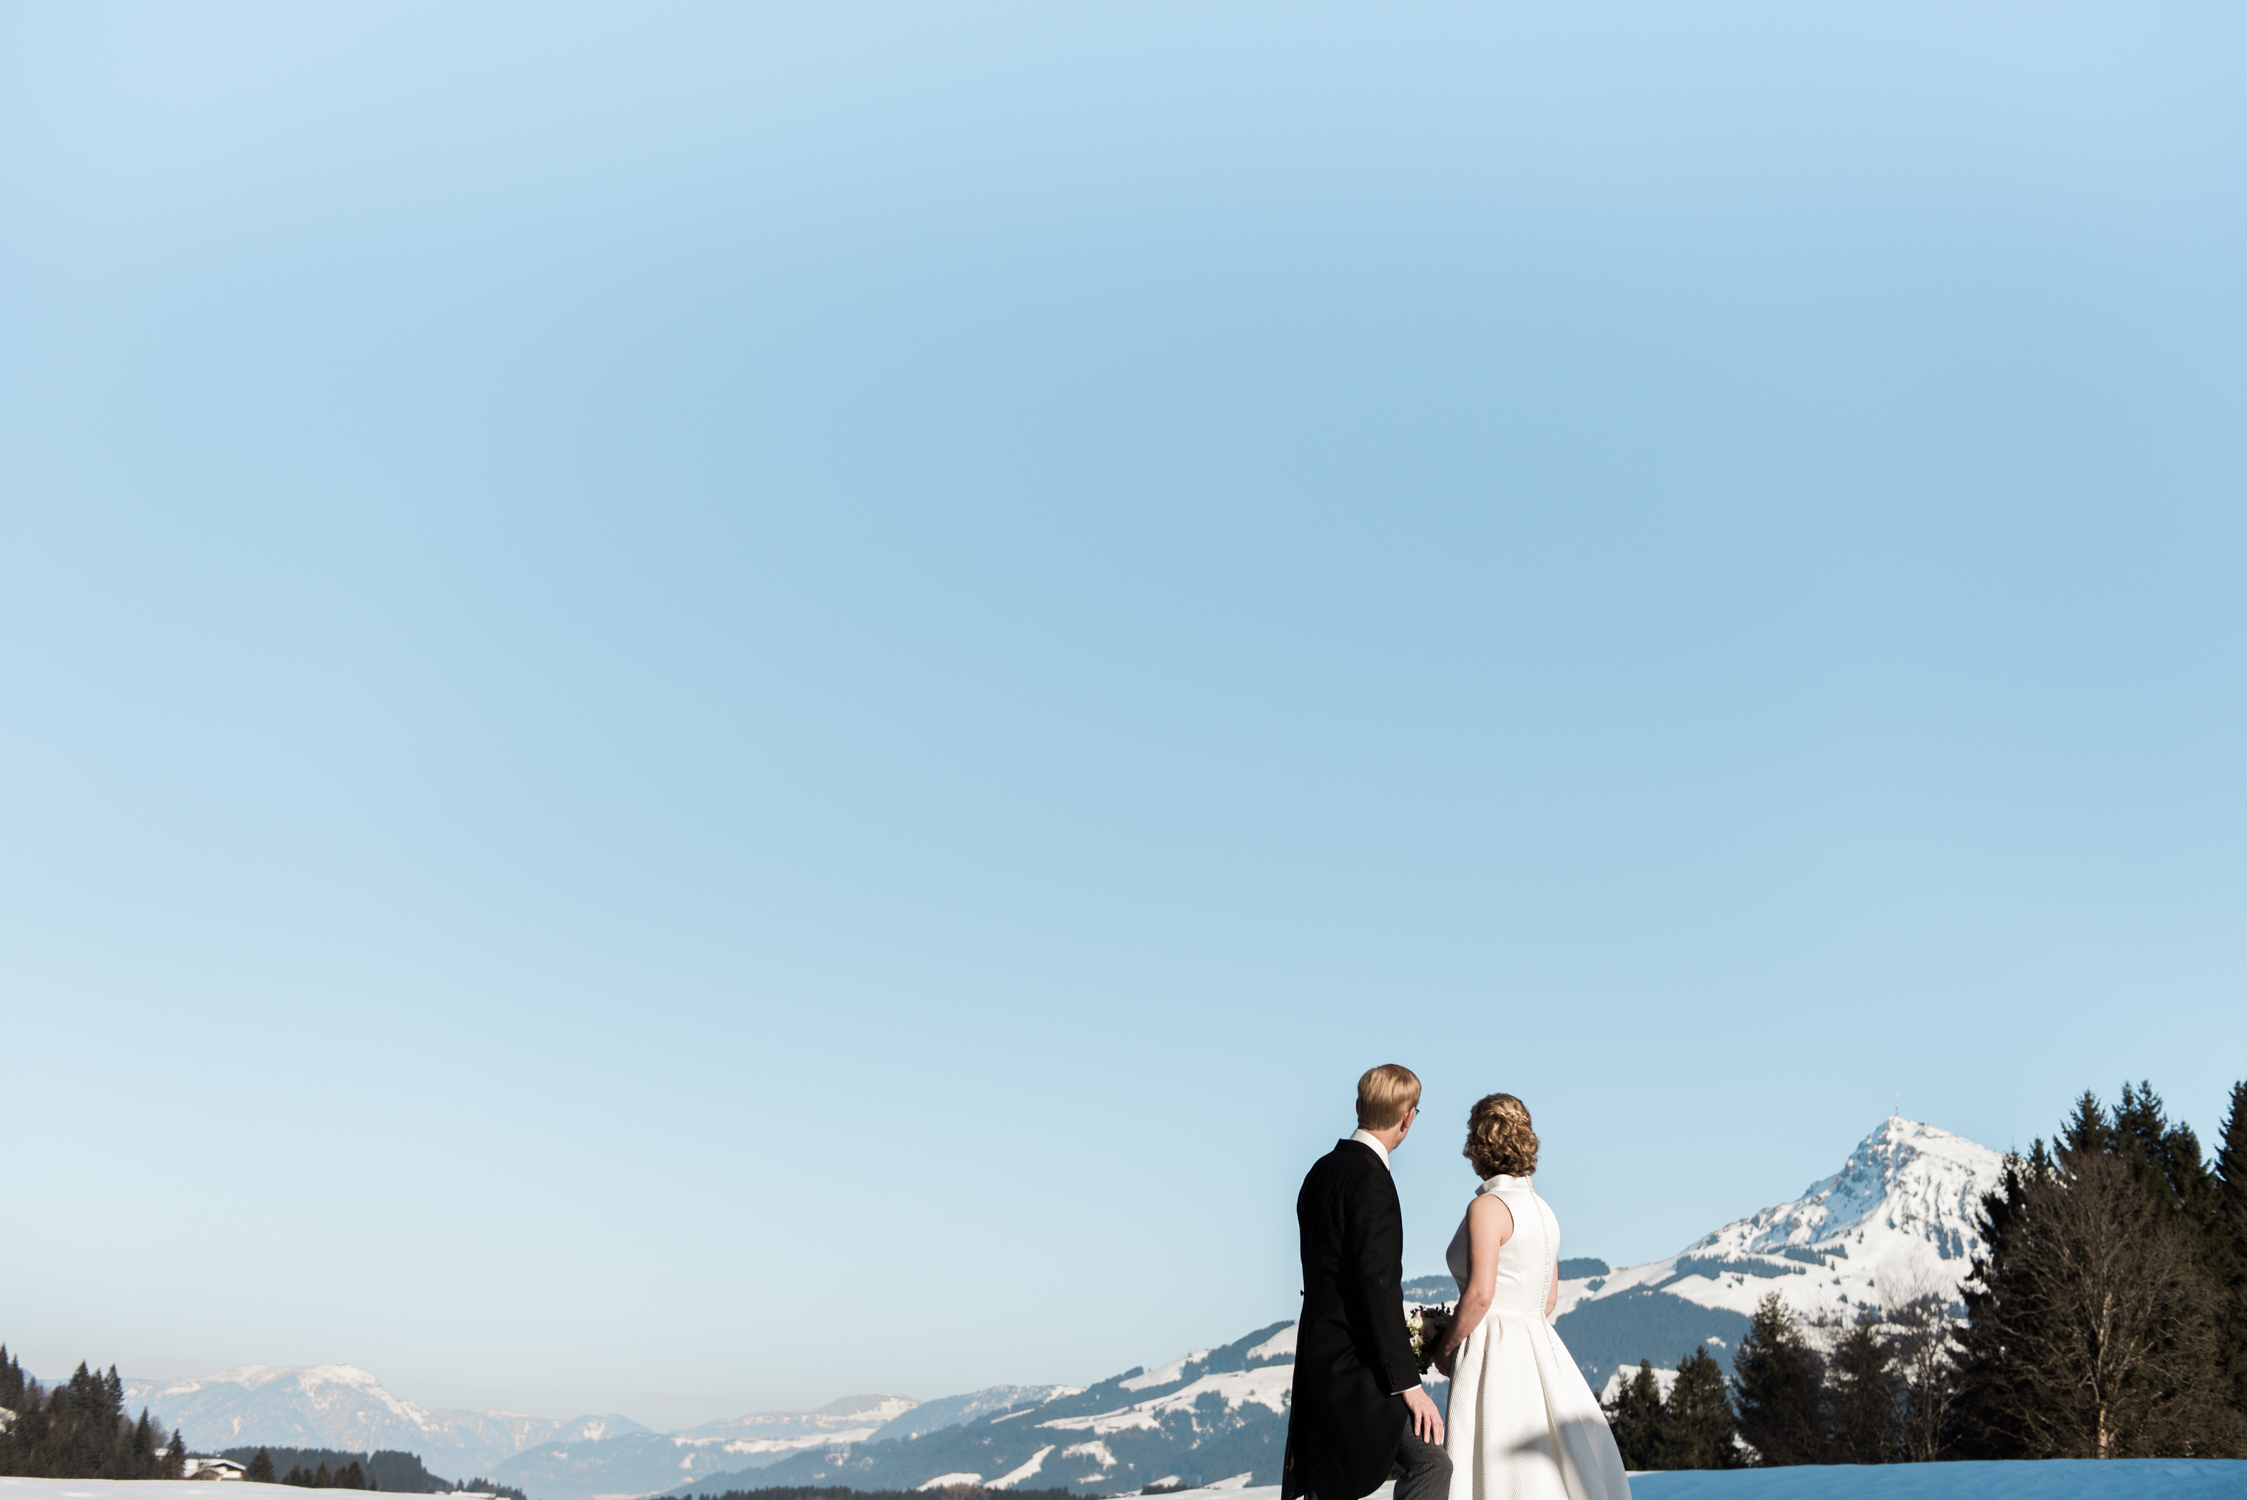 A wedding in tyrol, Austria photographed by a detsination wedding photographer